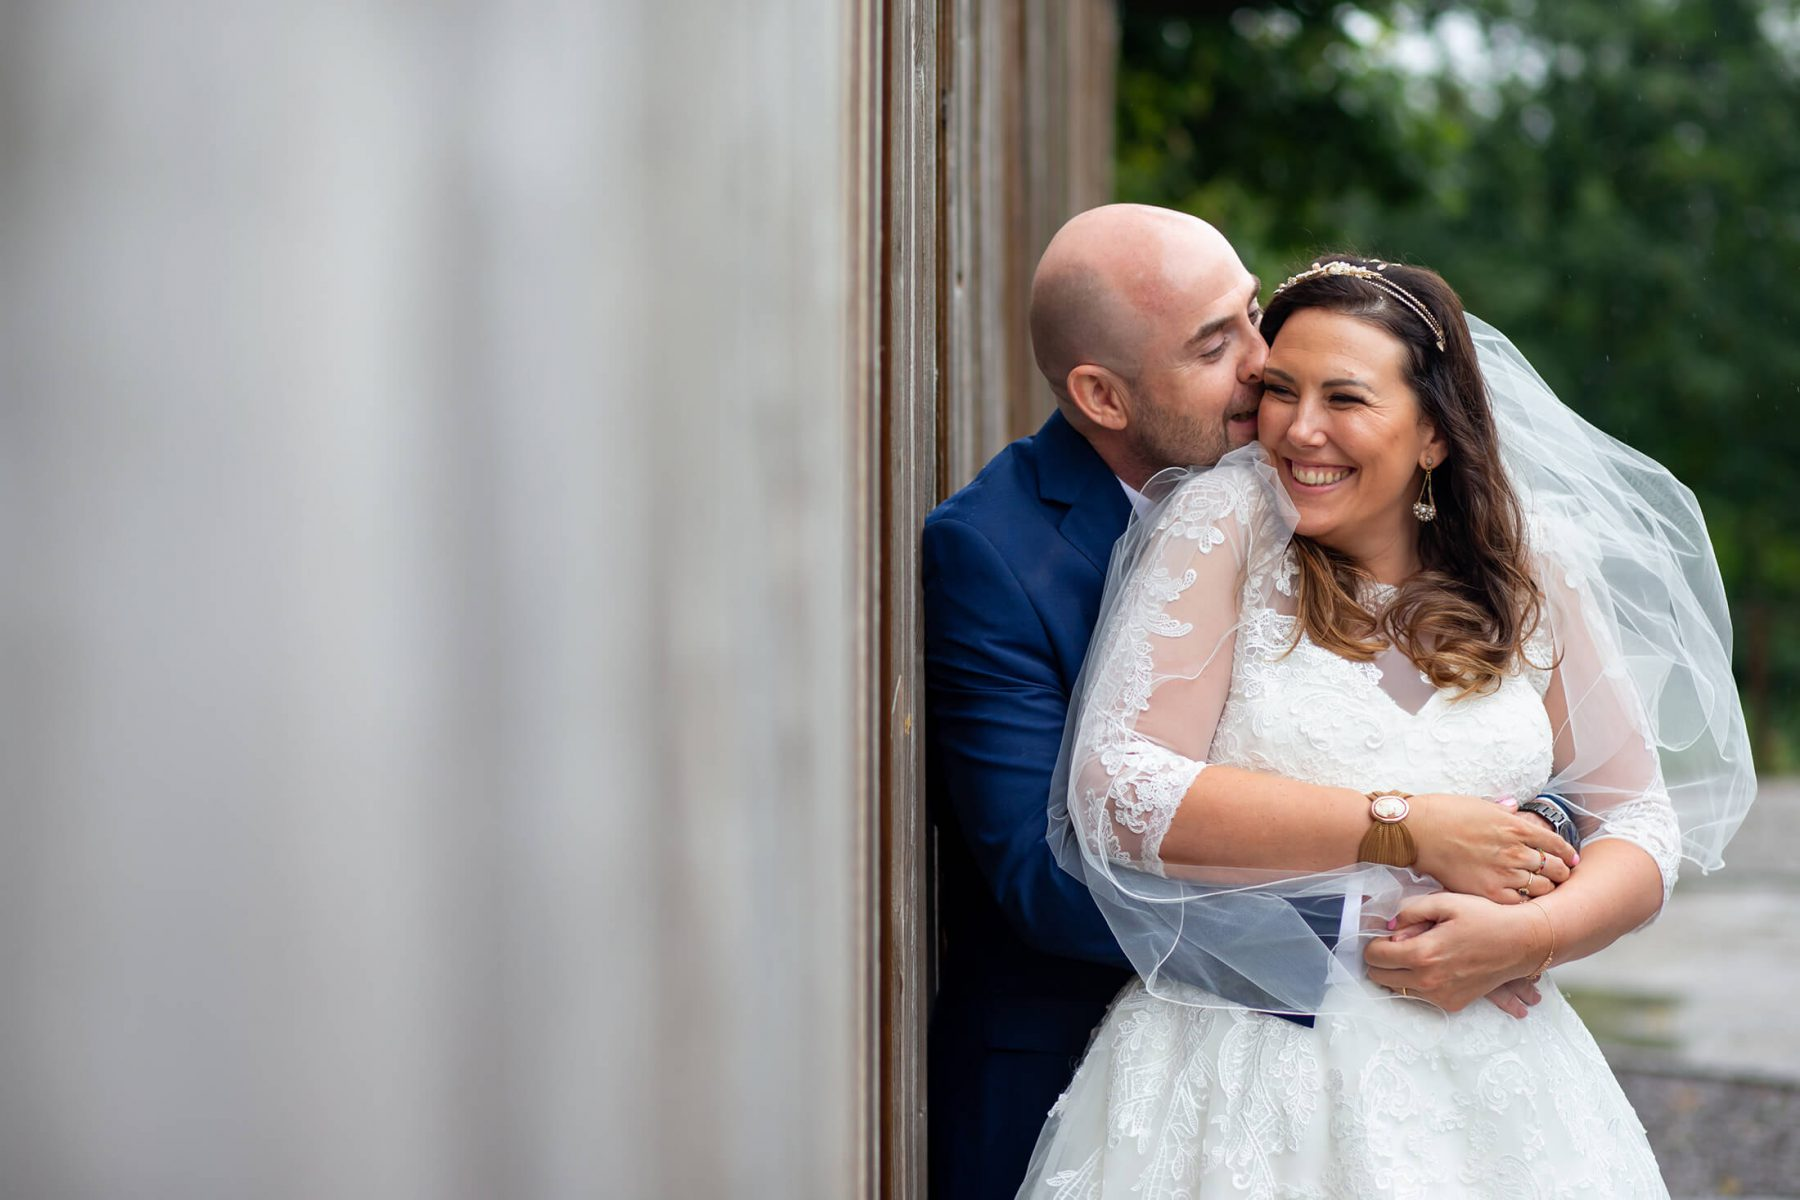 The bride and groom cuddle after their ceremony